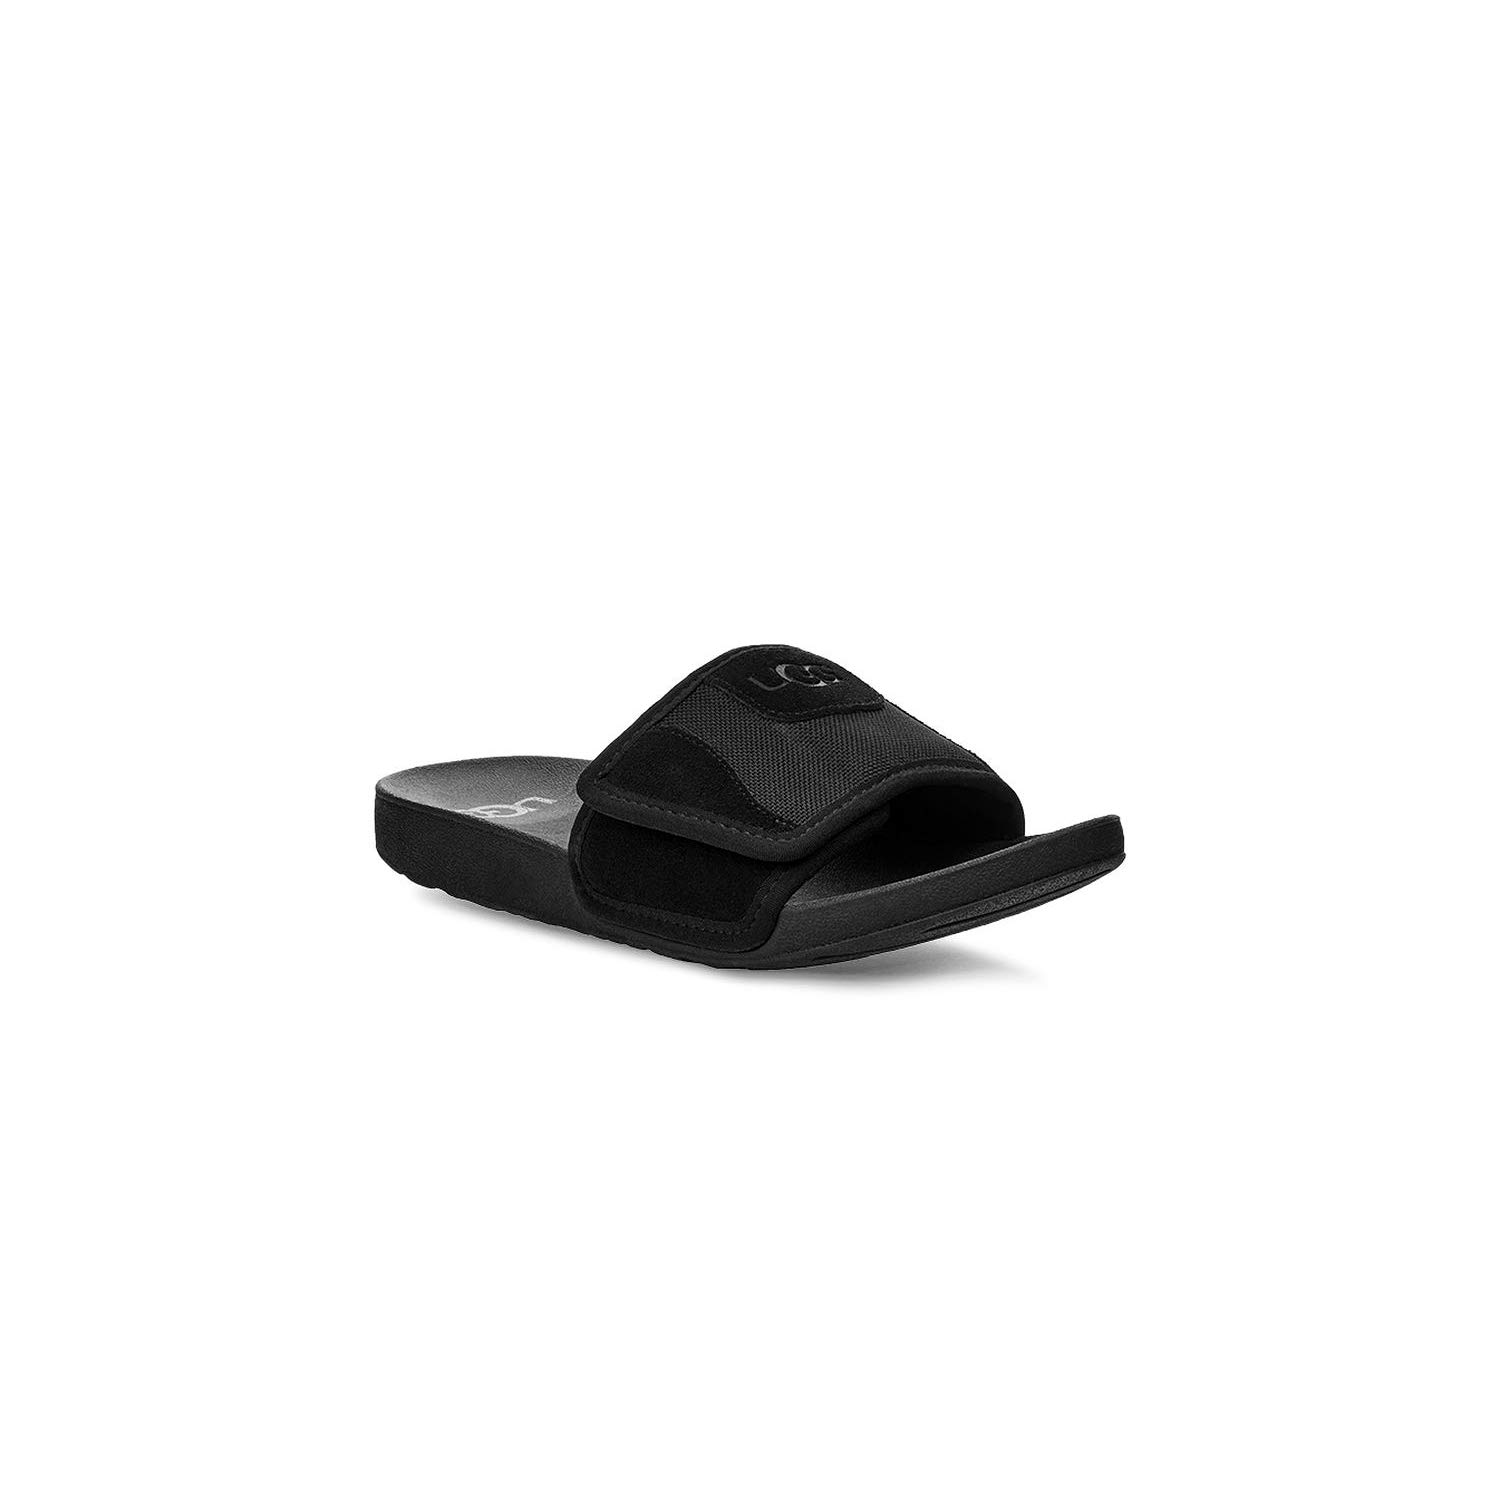 UGG Unisex K Beach Slide Sandal, Black, 13 M US Little Kid